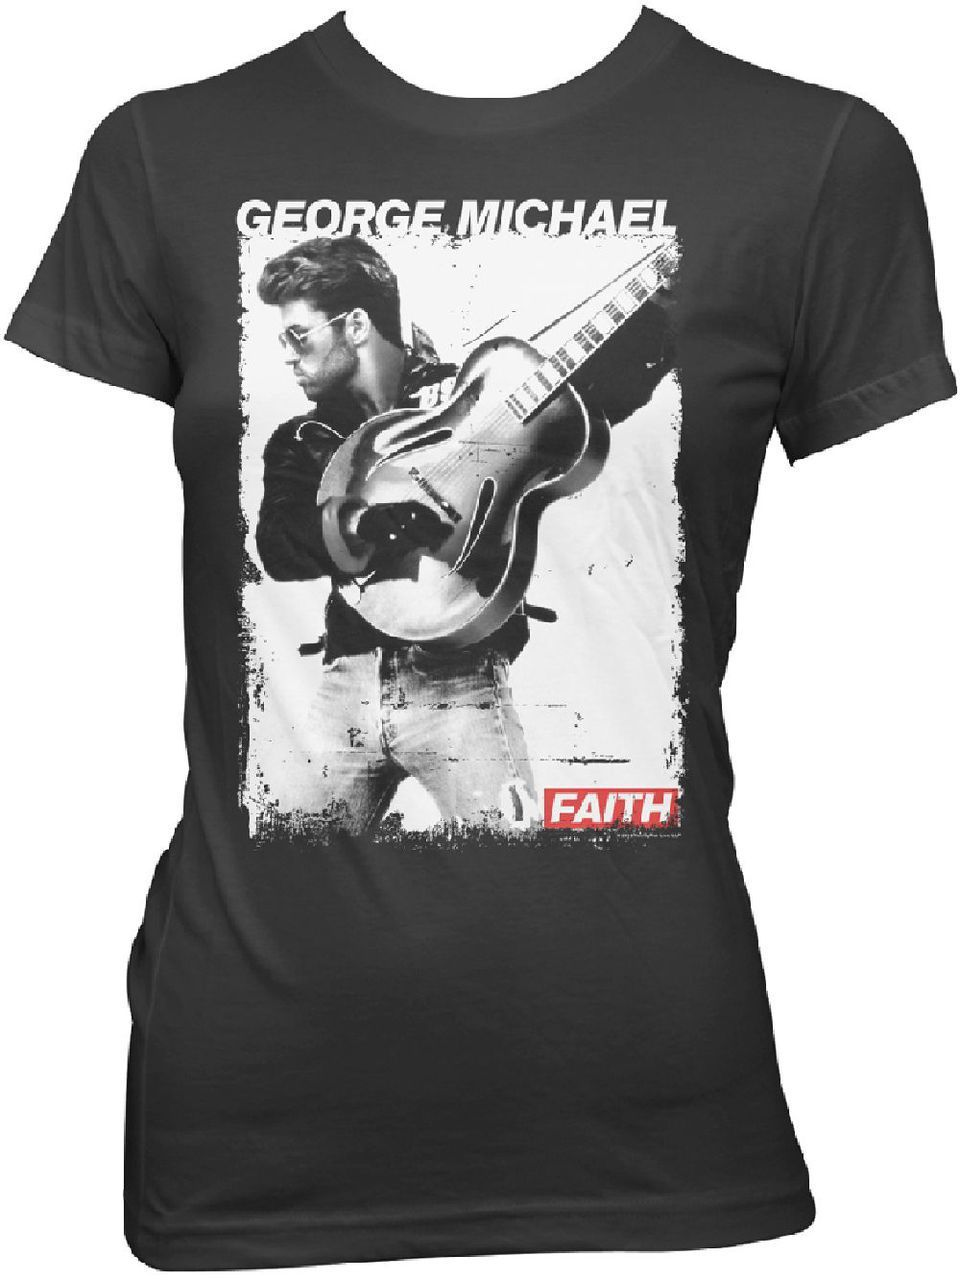 cd68dcce This ladies' George Michael t-shirt features a black and white still  photograph of George from his music video for Faith. Released in 1987, on  George ...